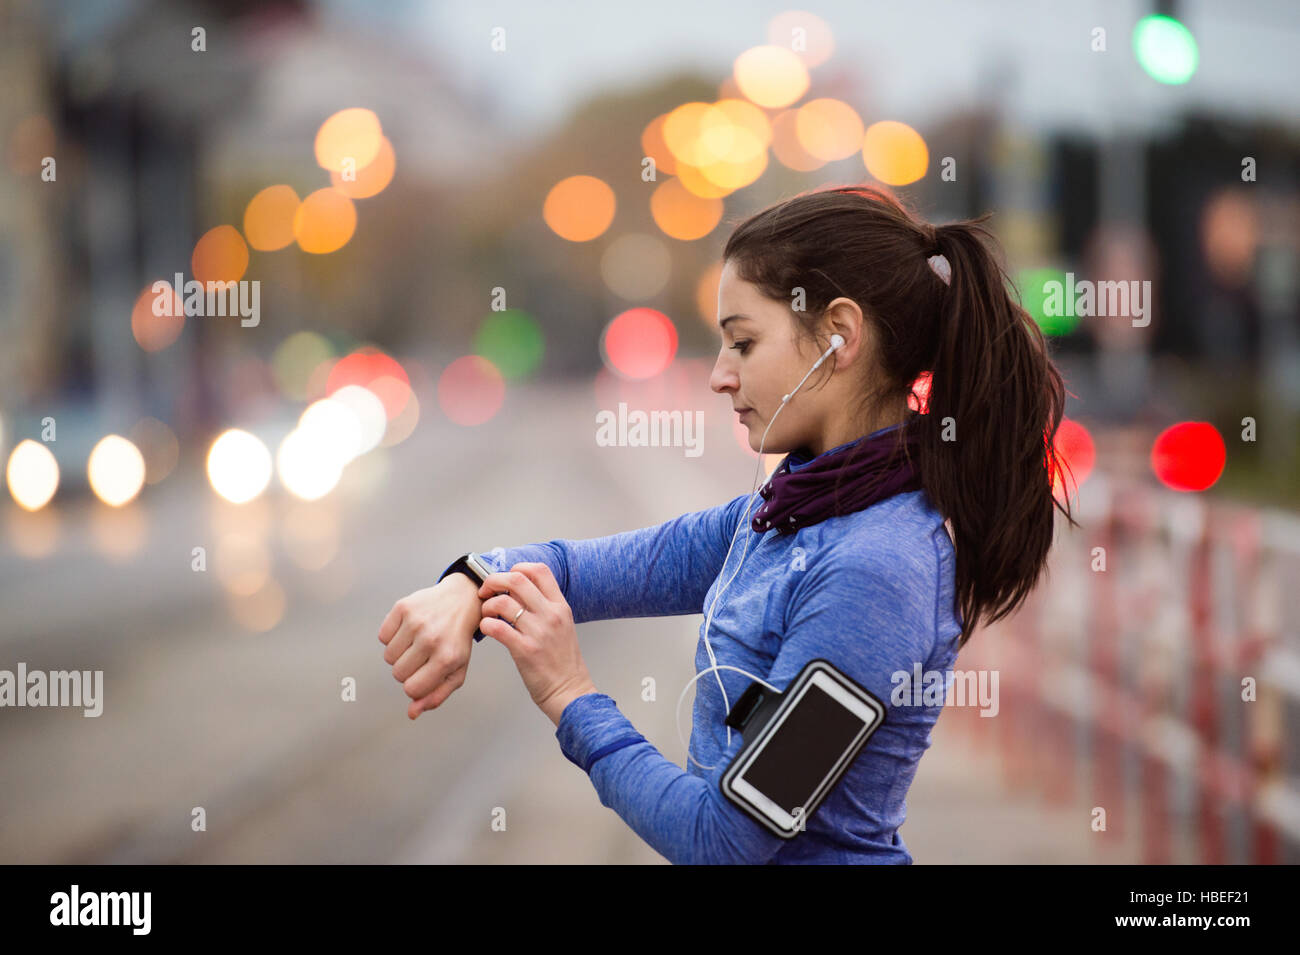 Young woman in blue sweatshirt running in the city - Stock Image